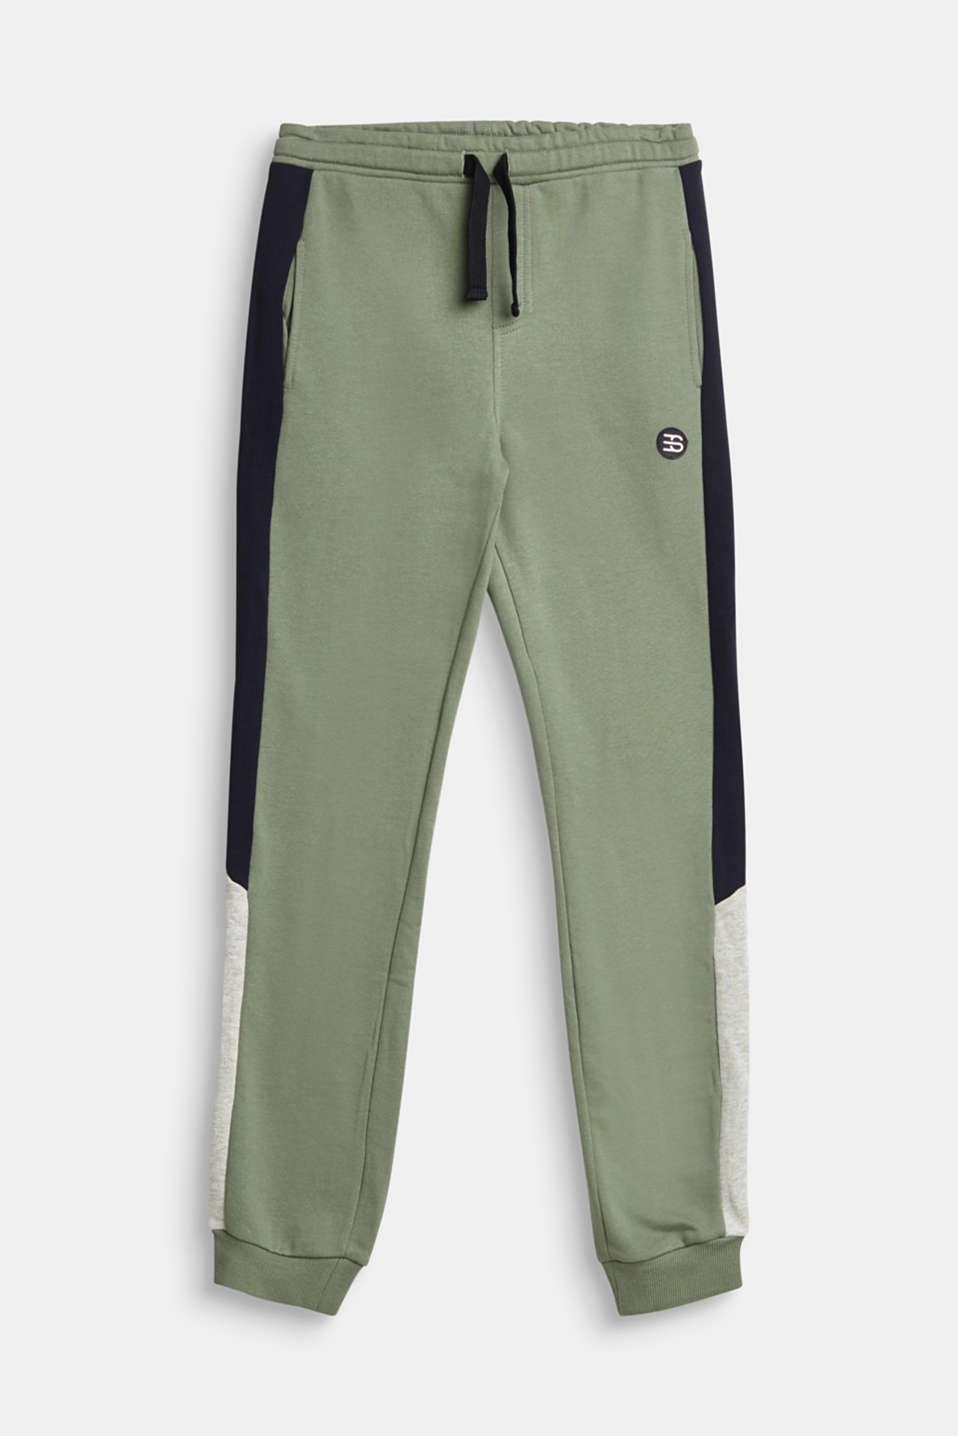 Esprit - Tracksuit bottoms with stripes, 100% cotton